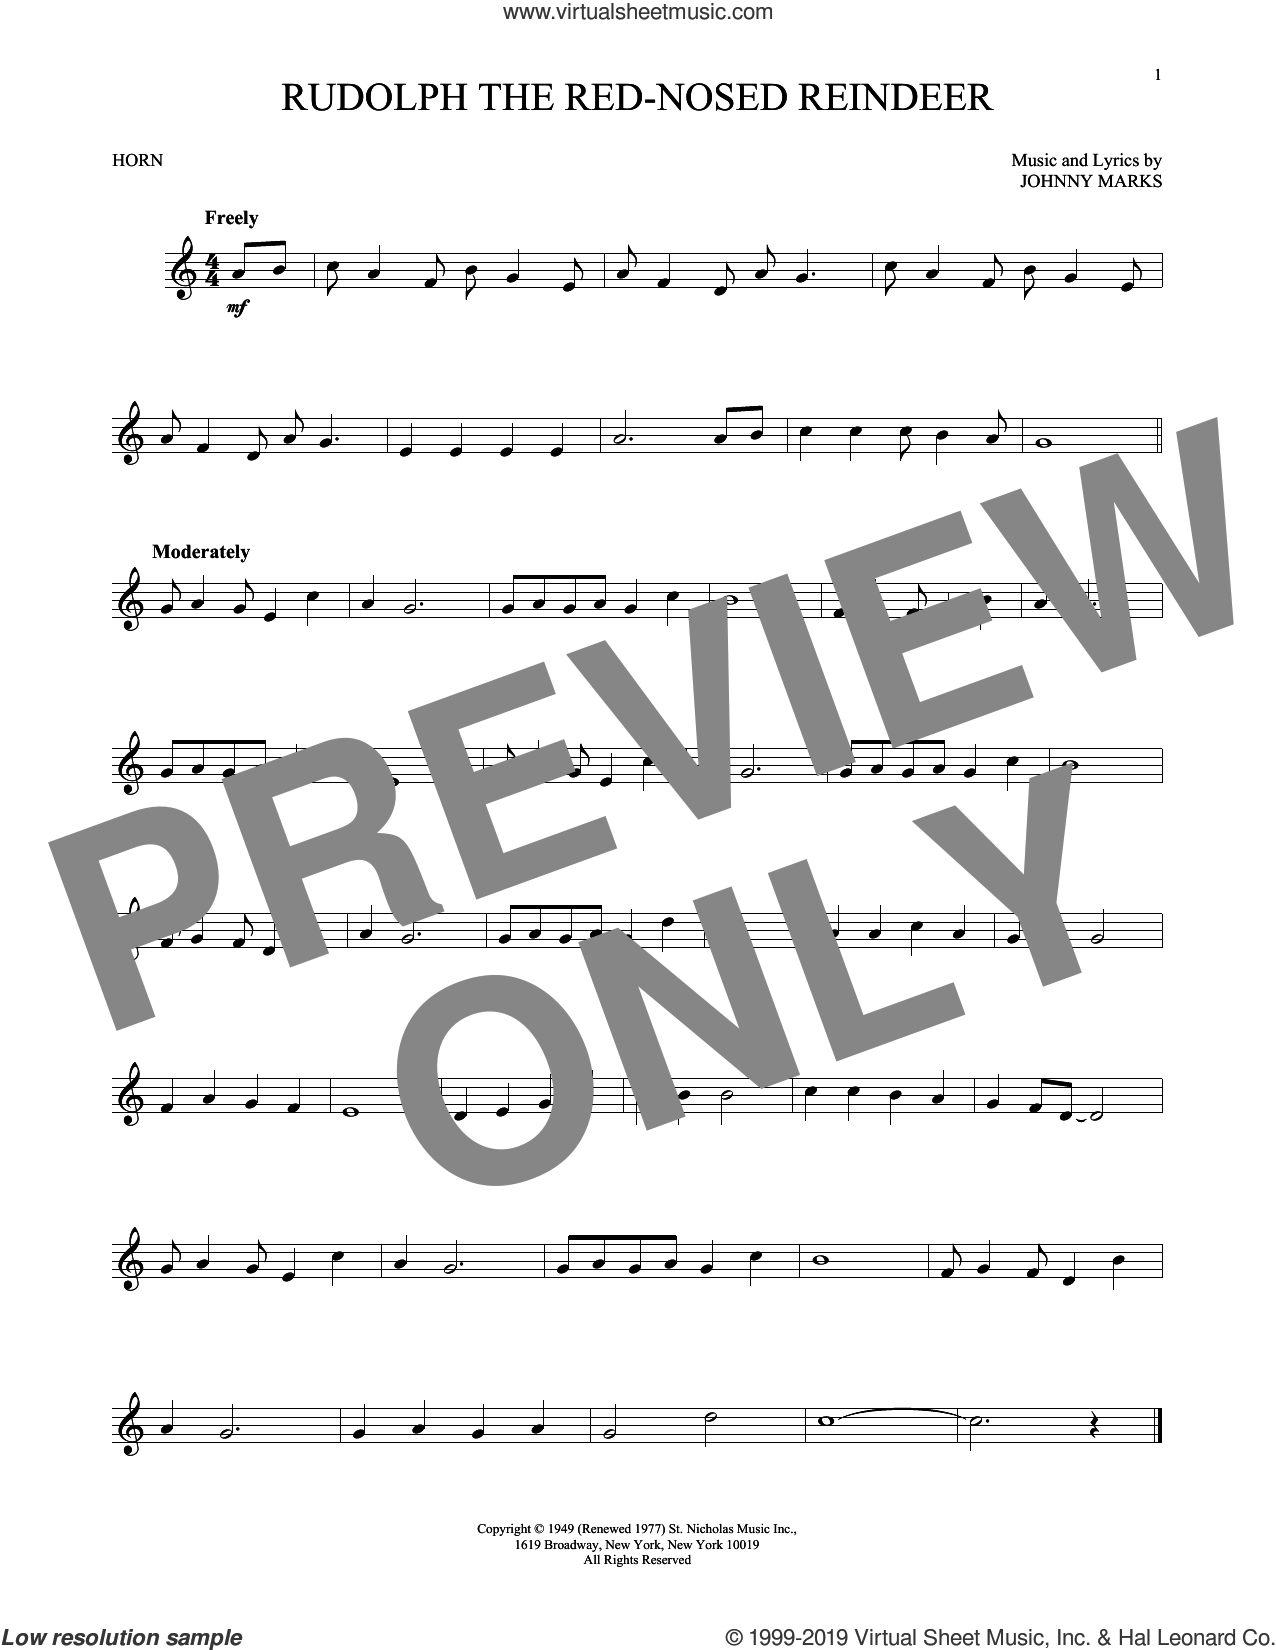 Rudolph The Red-Nosed Reindeer sheet music for horn solo by Johnny Marks and John Denver, intermediate skill level